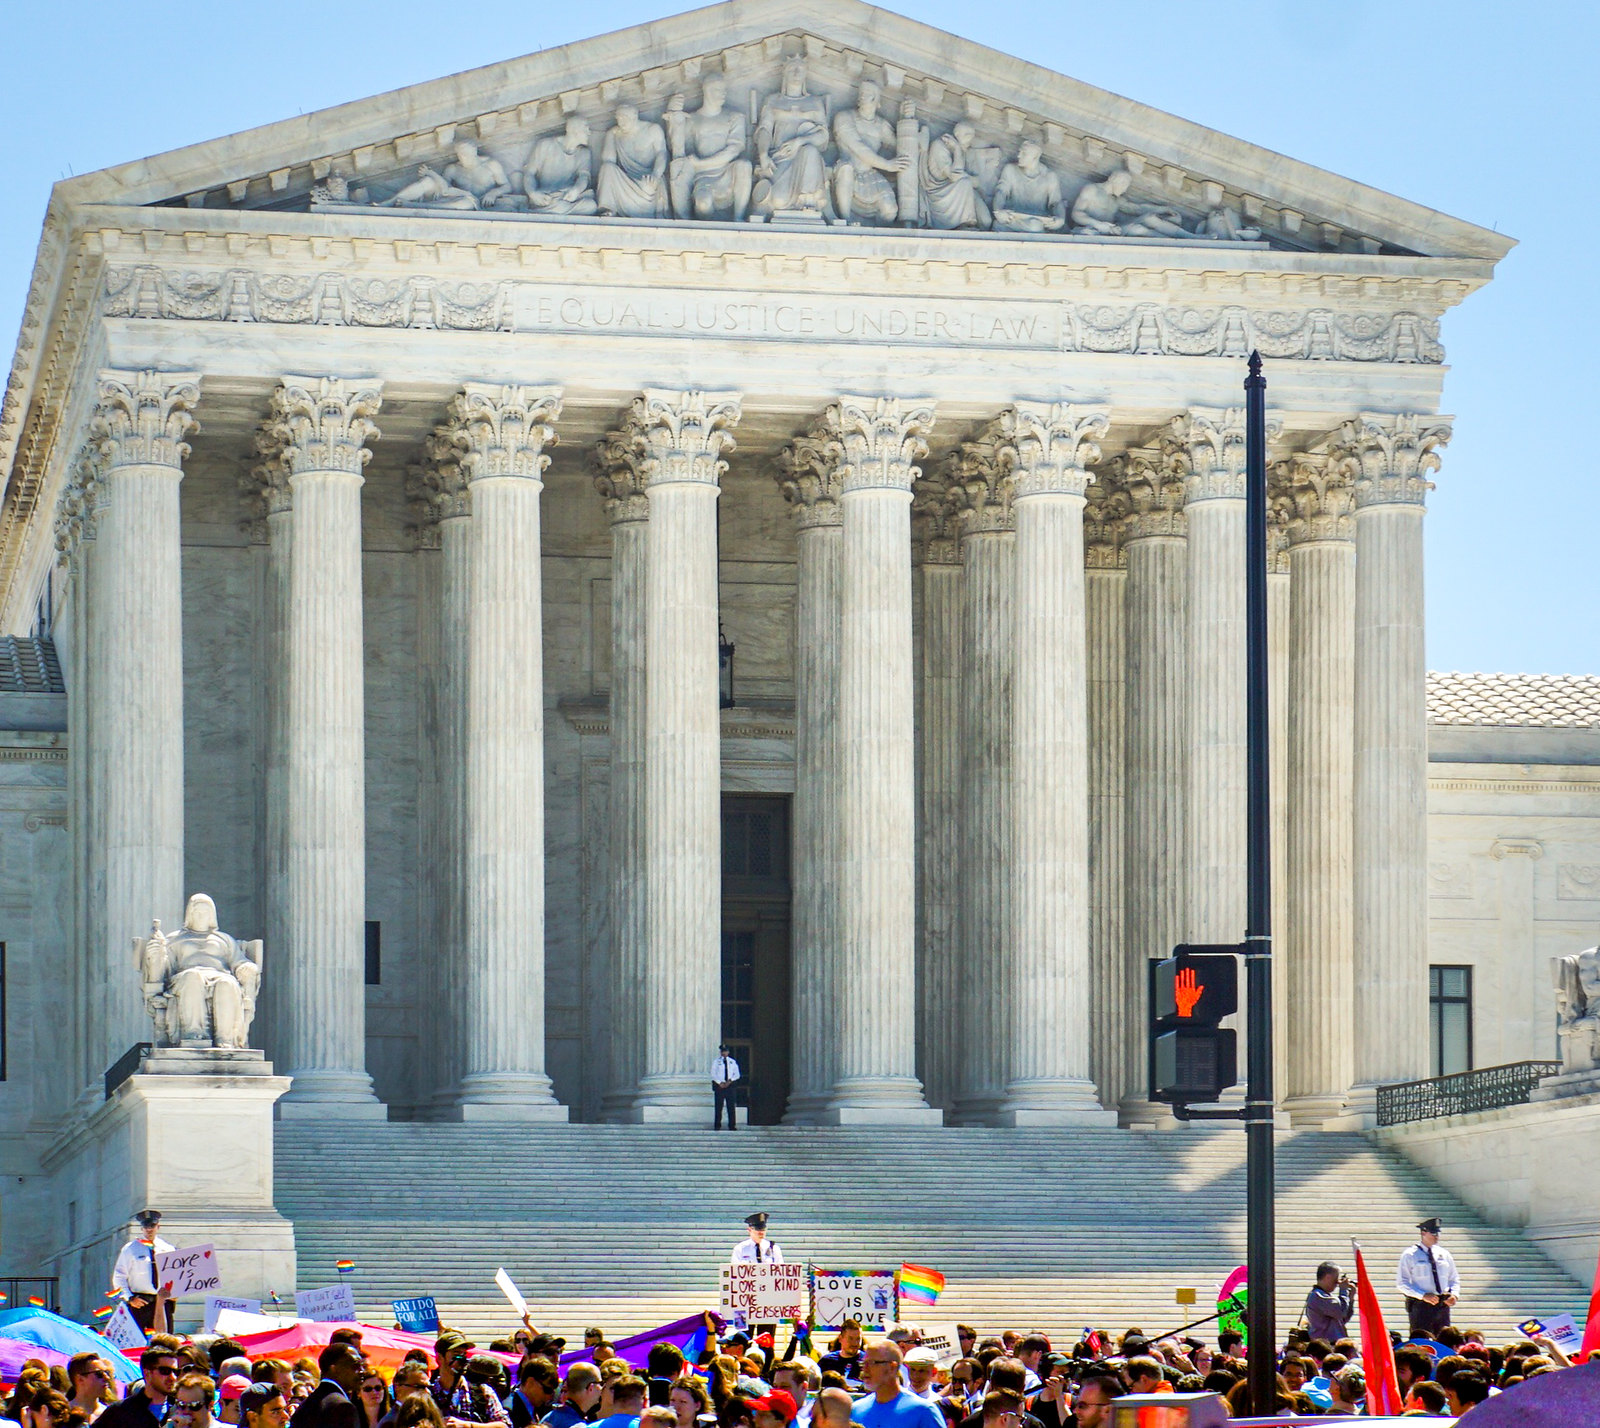 2015.048.28 SCOTUS, Washington, DC USA